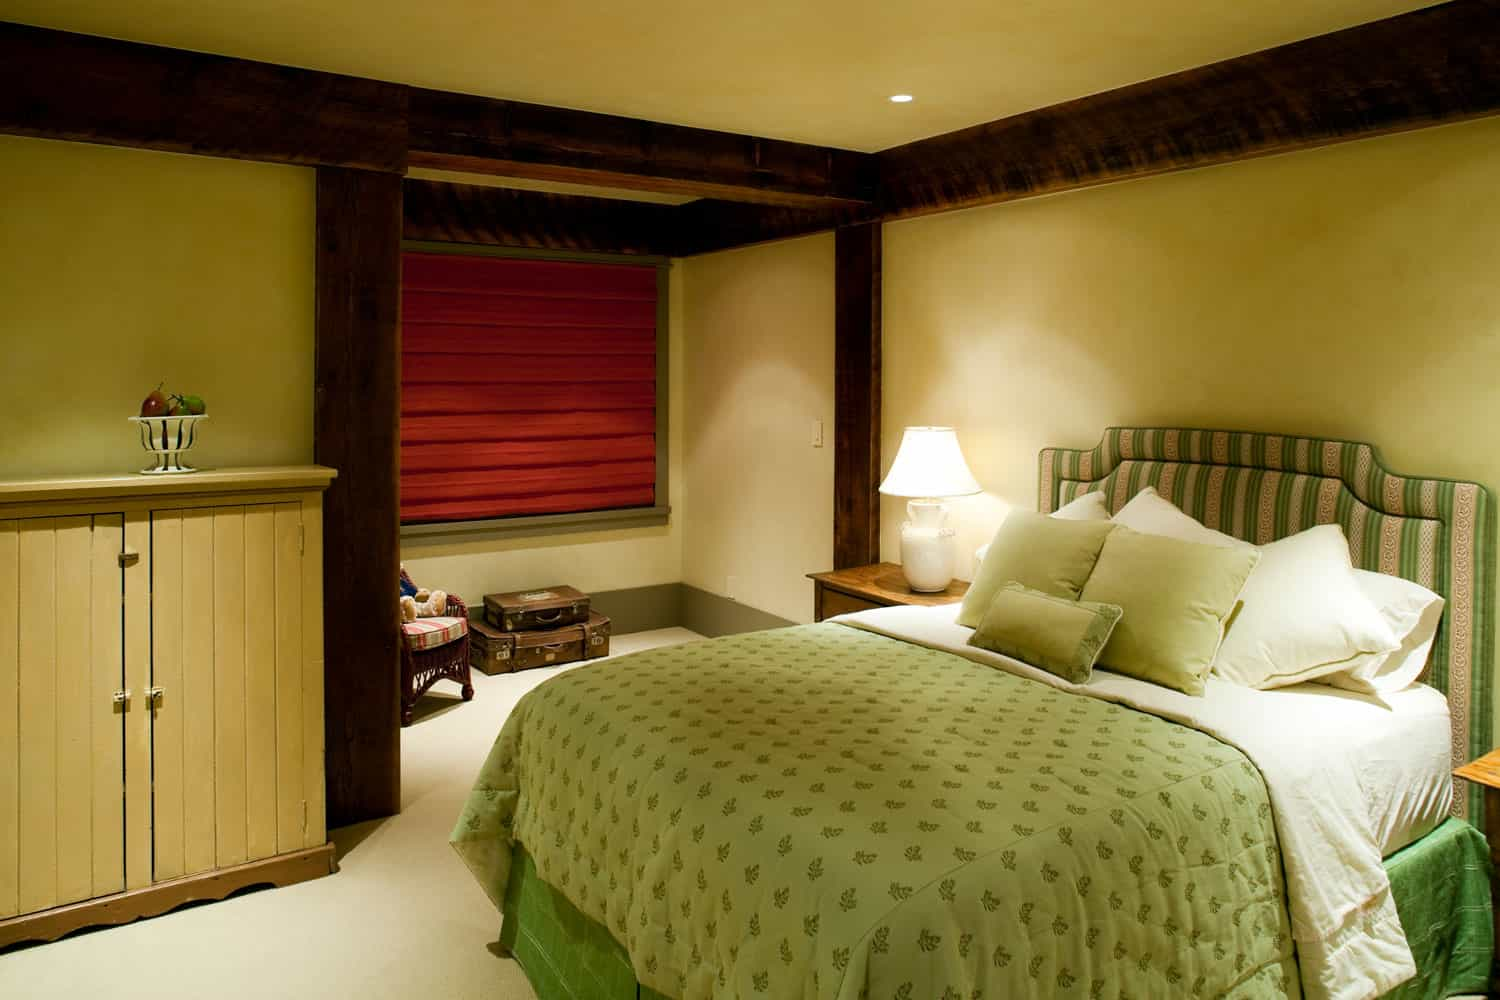 Rustic inspired basement bedroom with light mint green beddings and walls